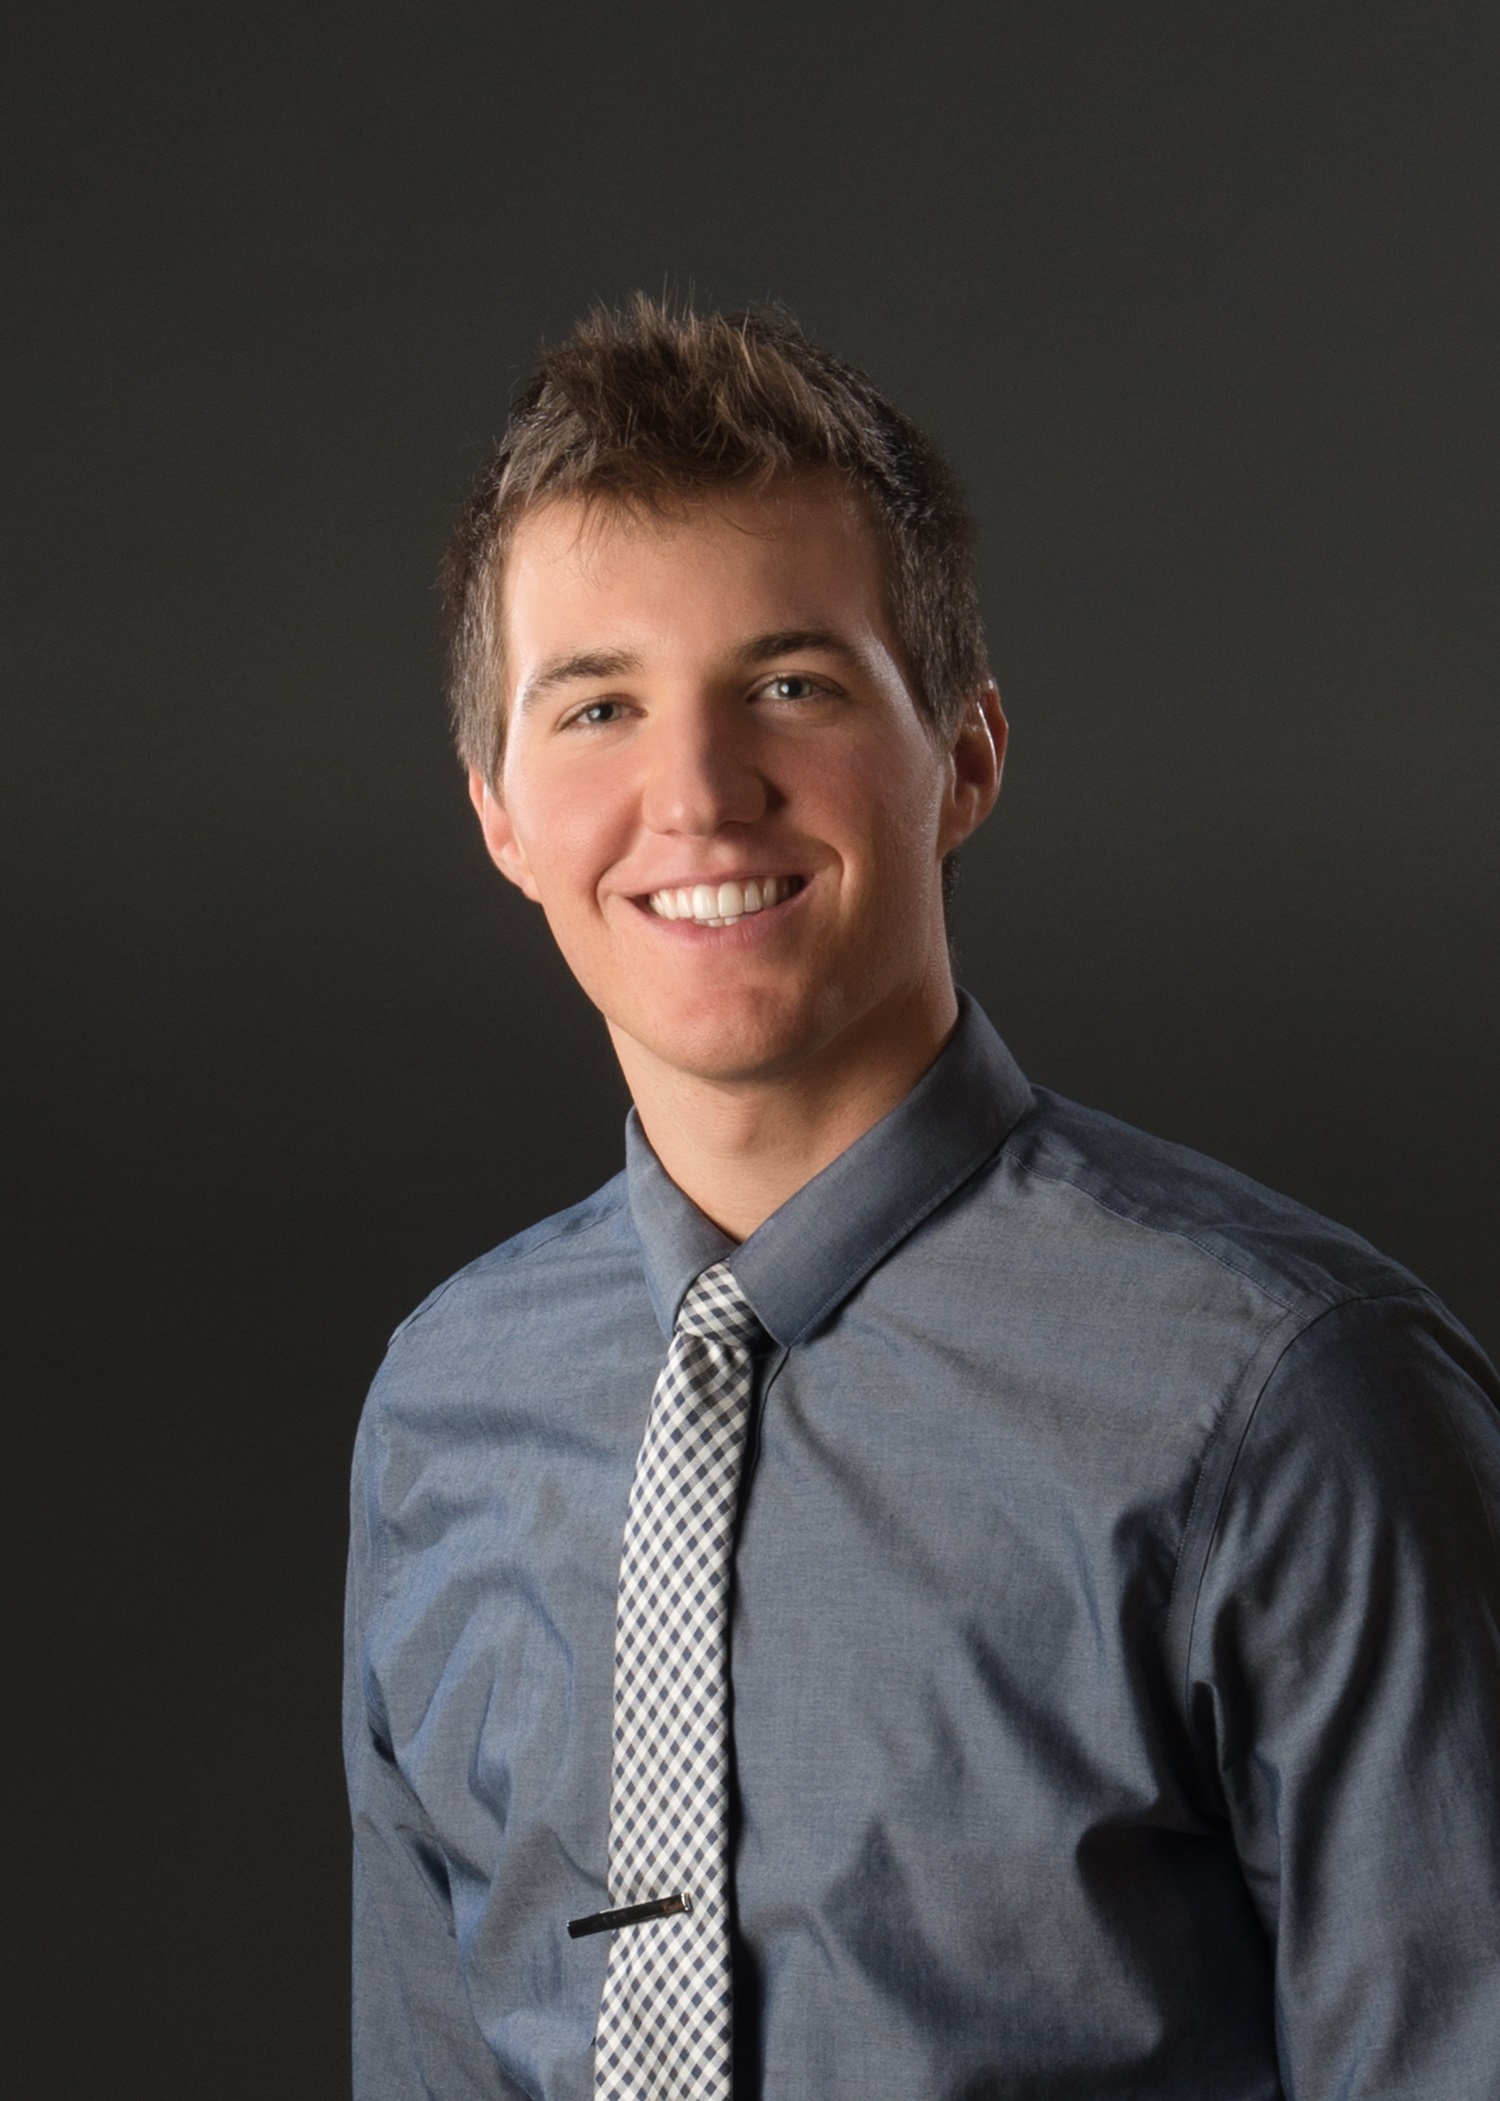 Michael Custer - Michael is a LPL Registered Sales Assistant at Custer Financial Advisors. He graduated from Hope College and specializes in working with millennials and former athletes, as he used to play quarterback in college. To learn more about Michael, visit Custer Financial Advisors or email him.